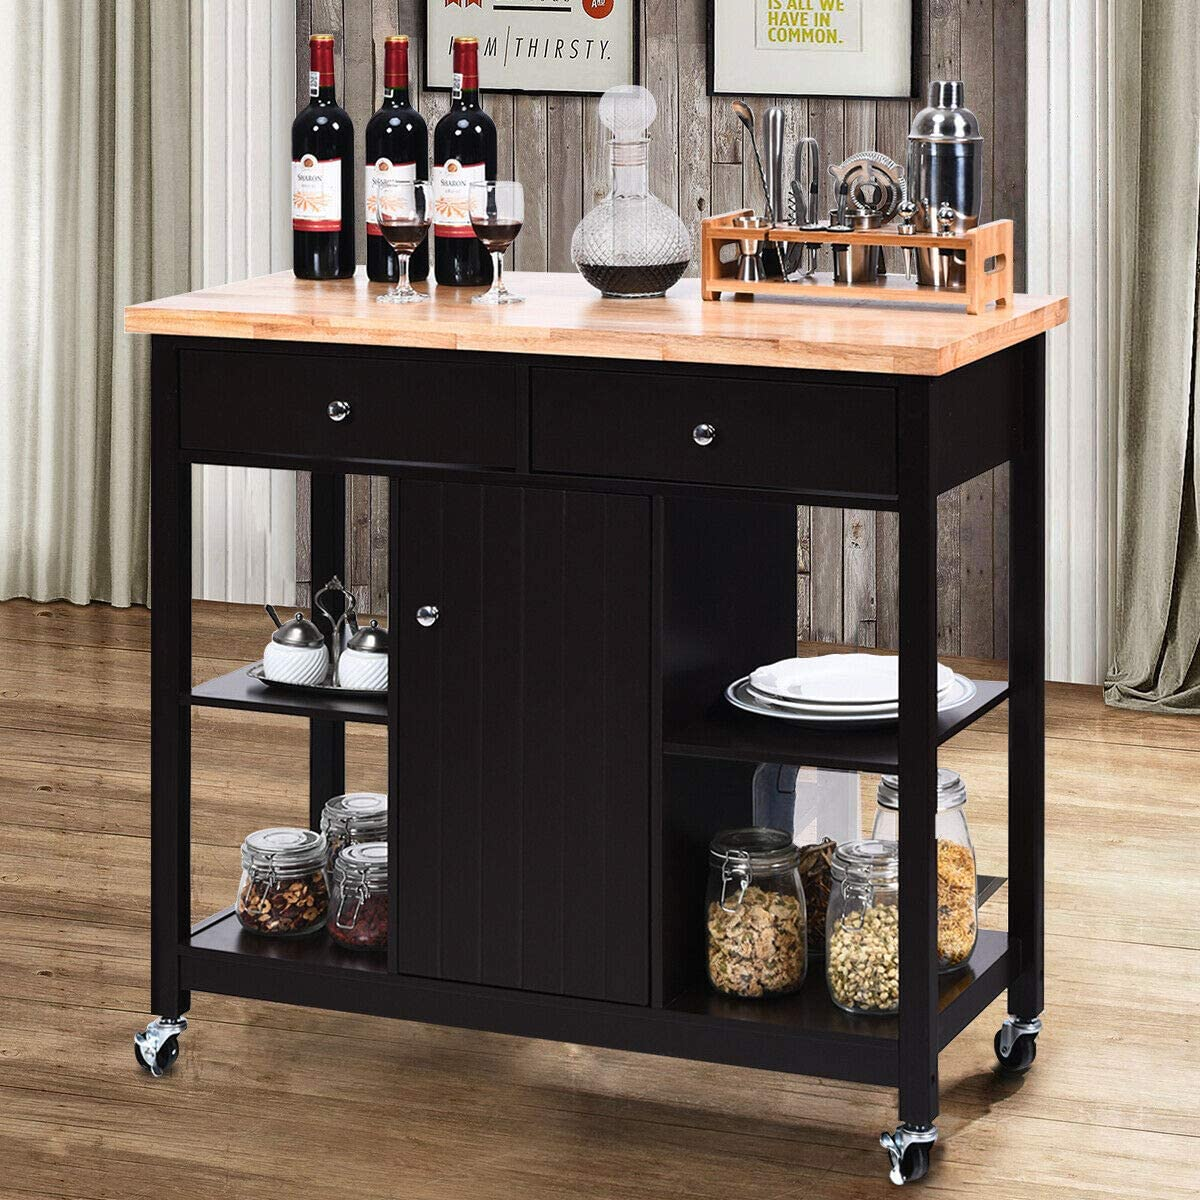 Deluxe 1 Pc of Rolling Kitchen Trolley Utility Home discount Cart Shelf Island C